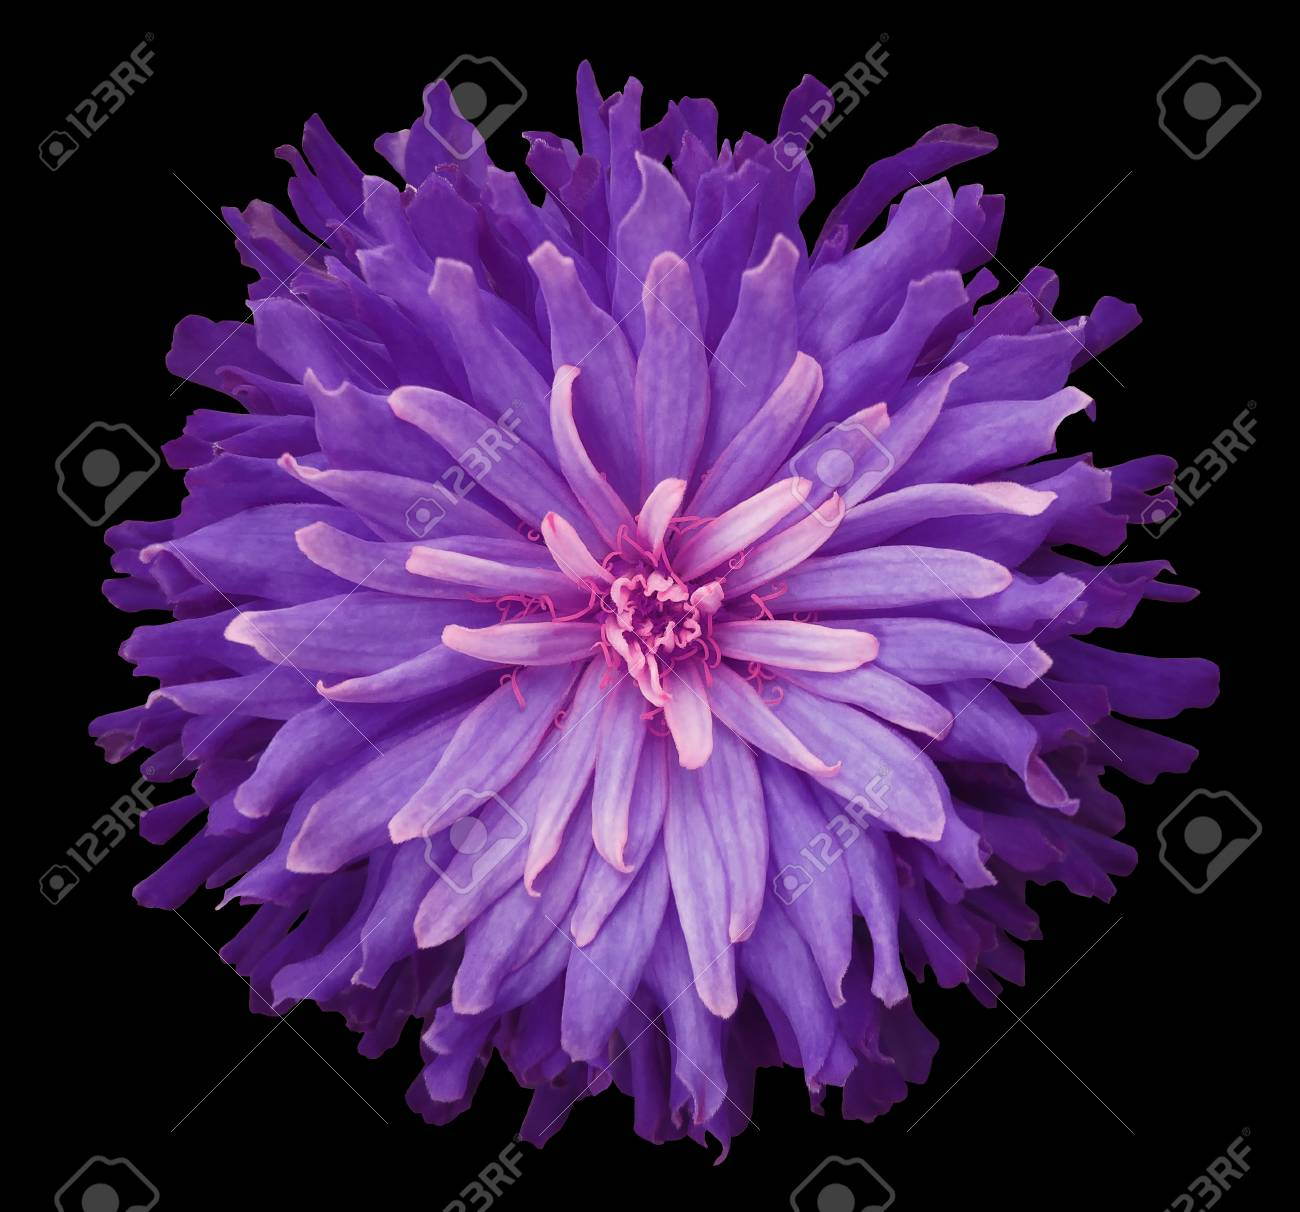 Purple Pink Flower On A Black Background Isolated With Clipping